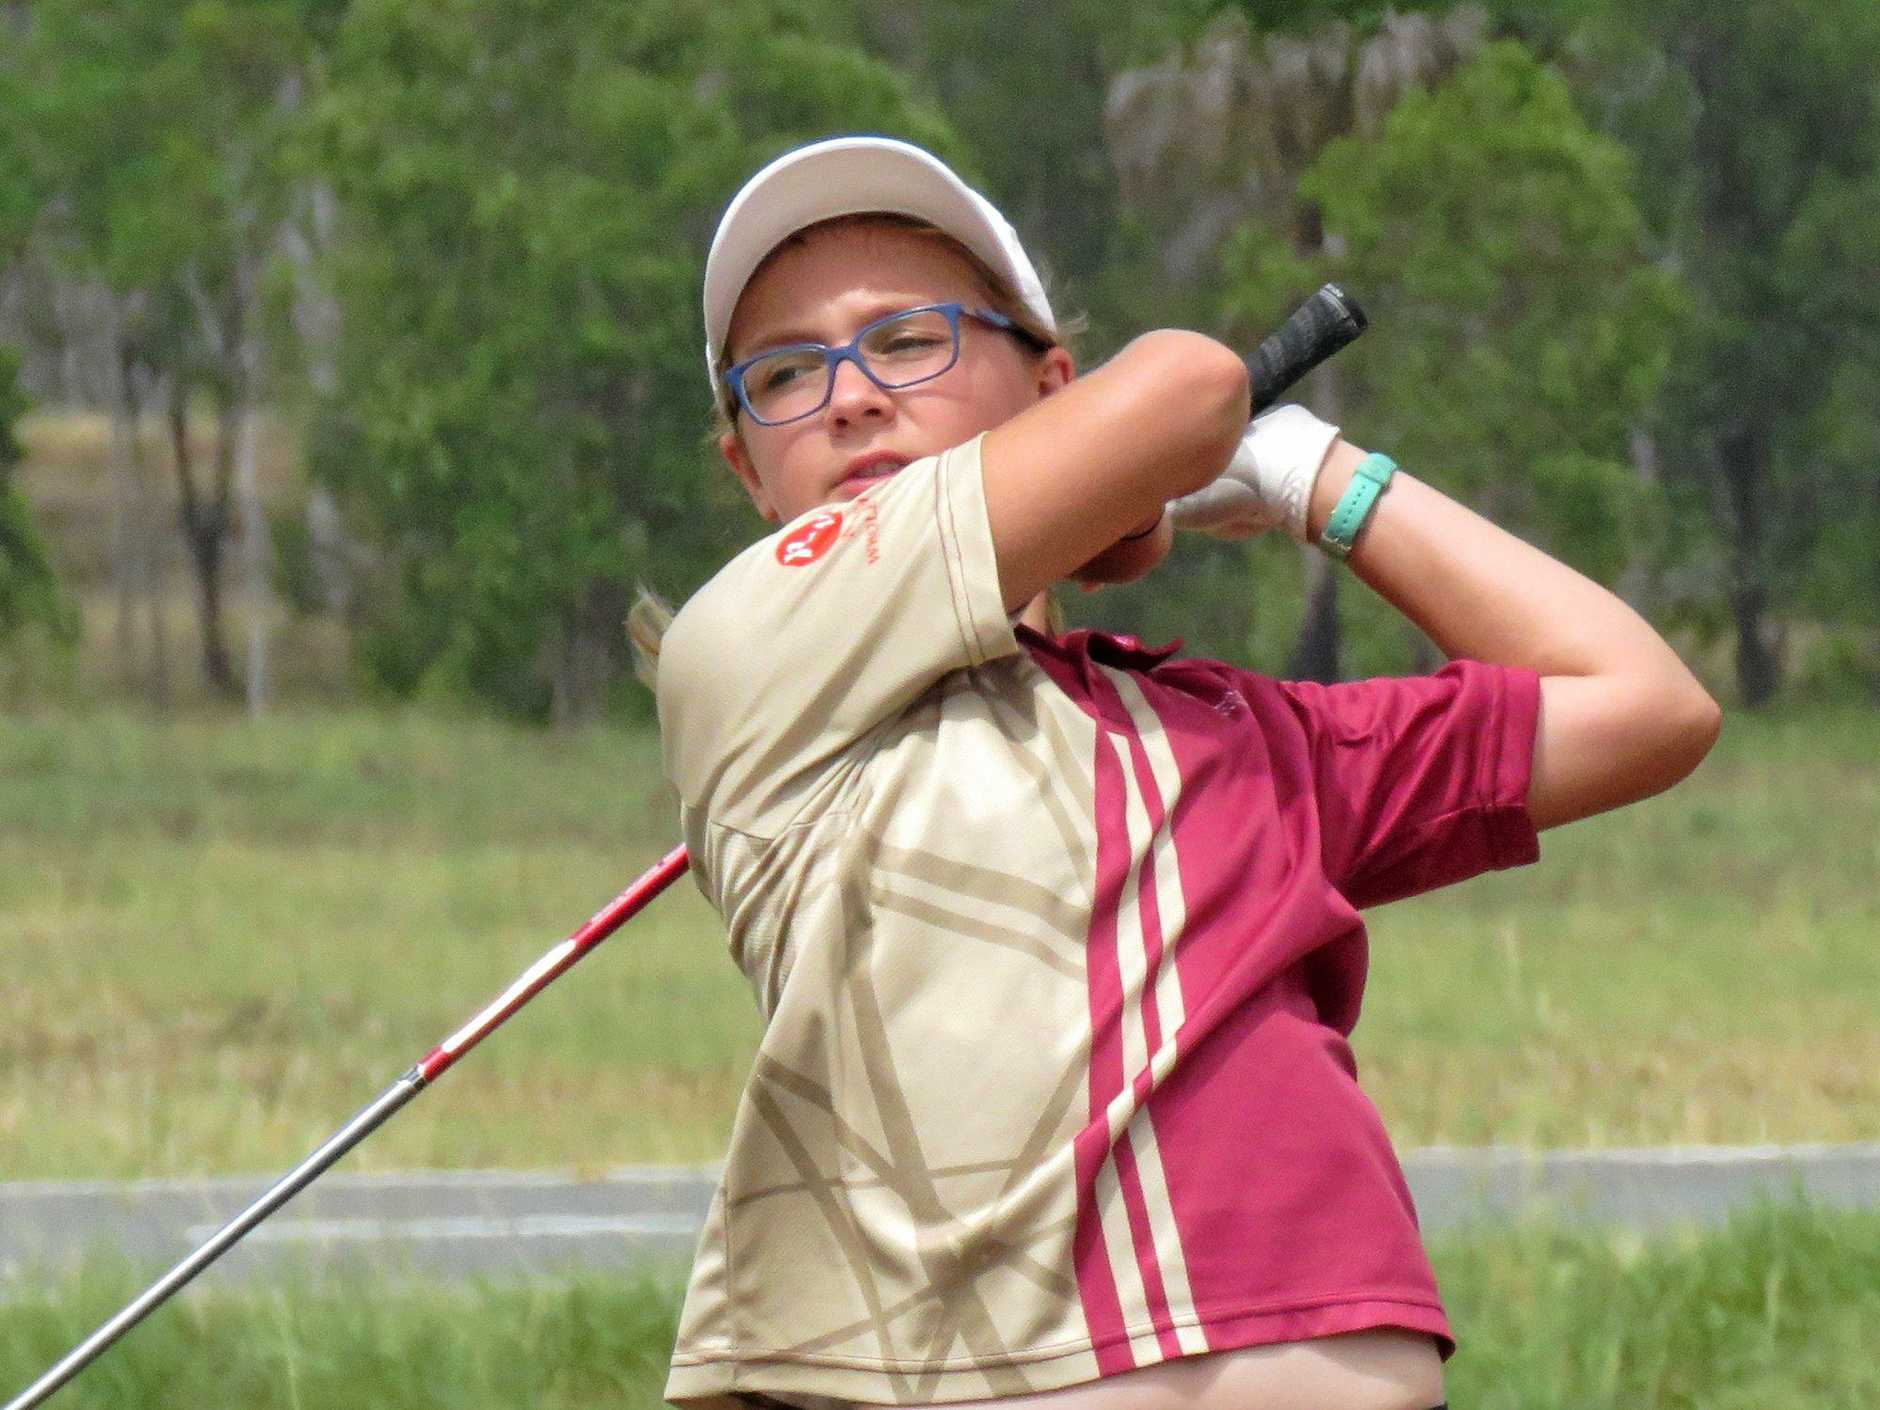 FORM: Noosa's Josie O'Brien watches the ball closely after a drive in an Invincibles Tour event.